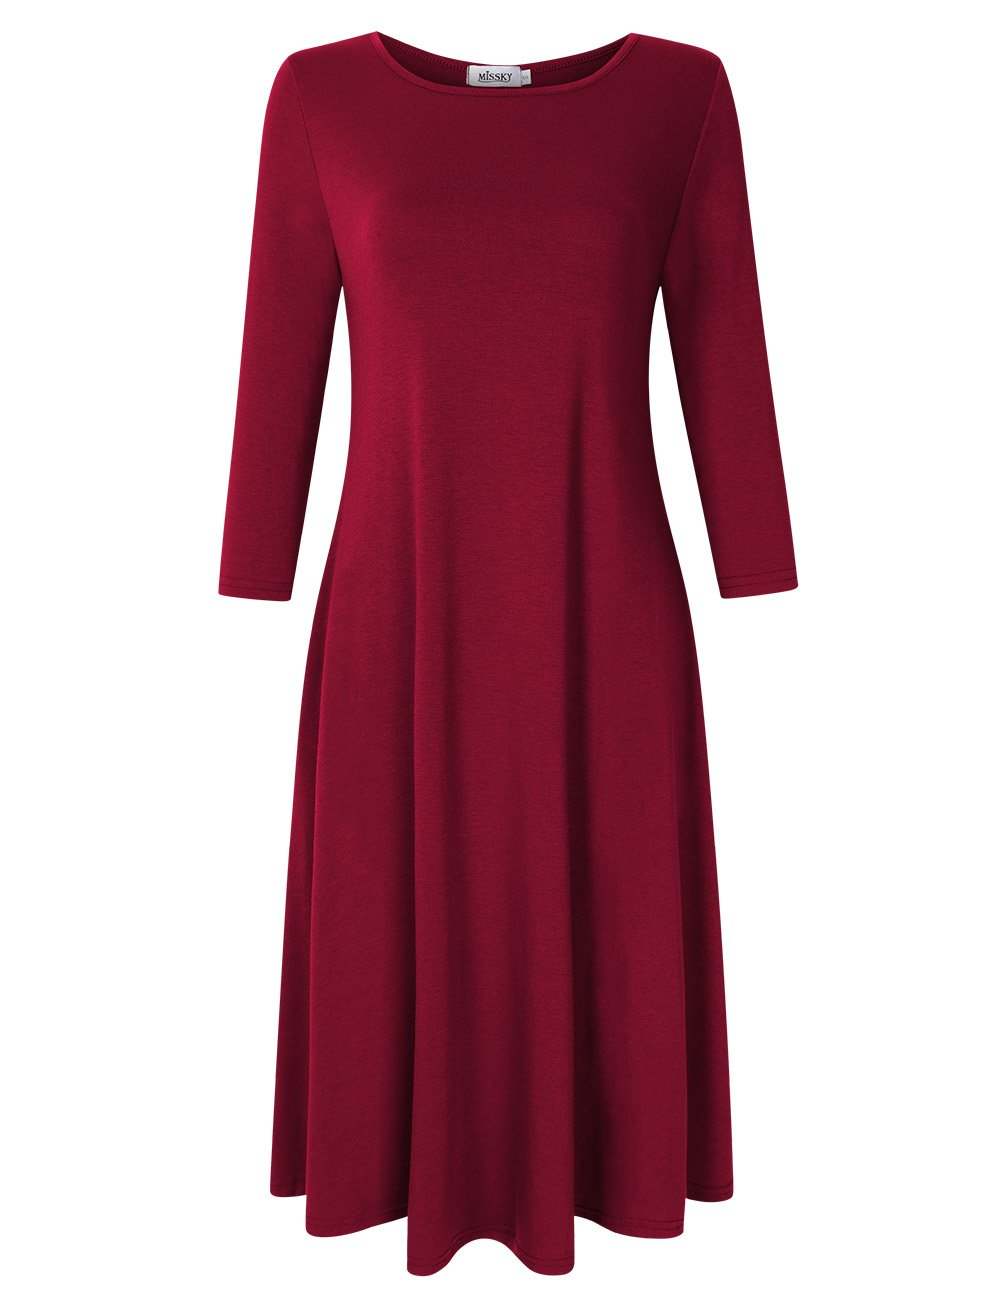 Available at Amazon: MISSKY Women's Pullover Pocket Loose Swing Casual Dress